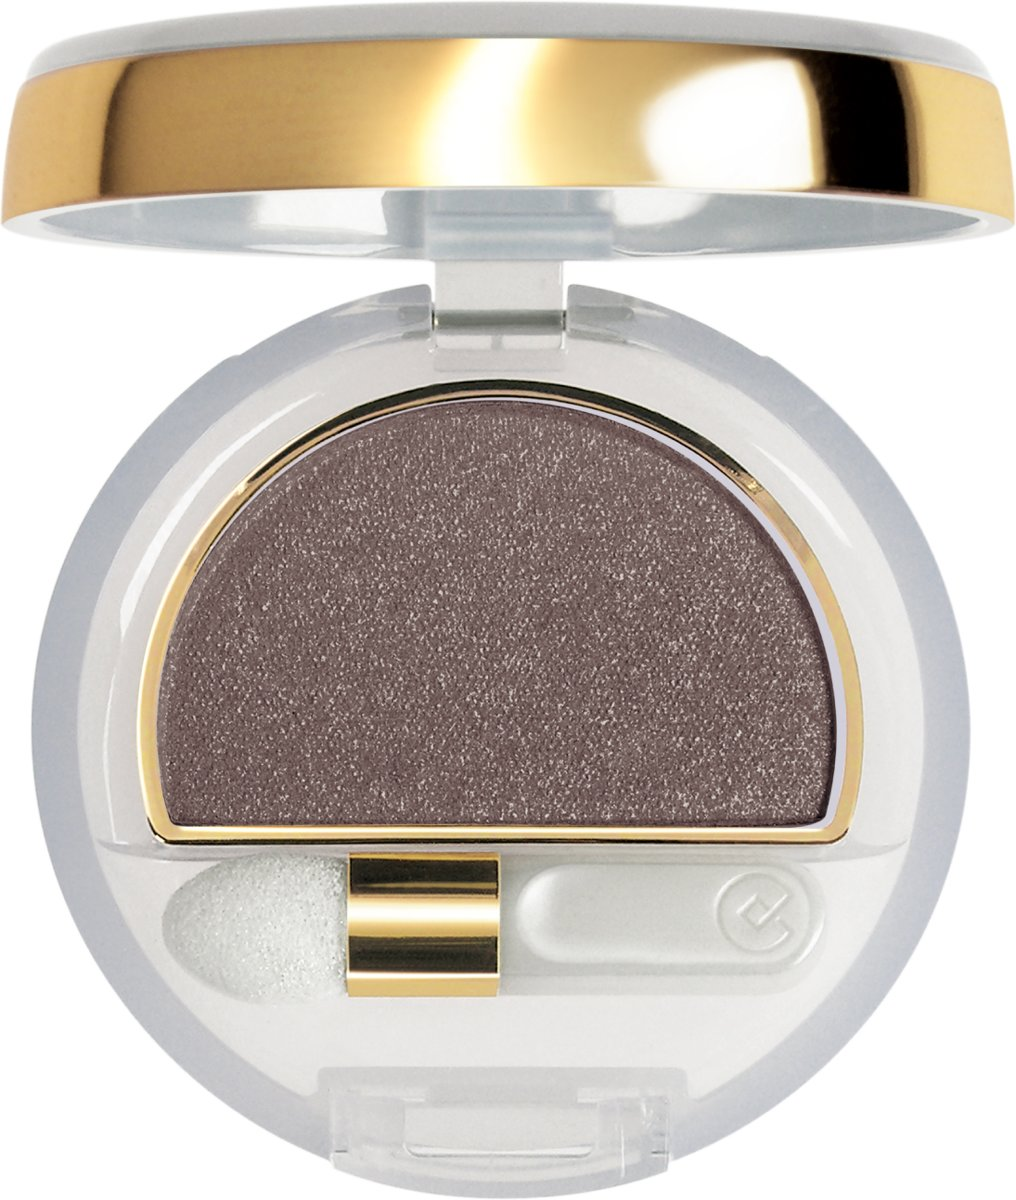 Collistar Silk Effect Eyeshadow - 69 Coffee - Oogschaduw